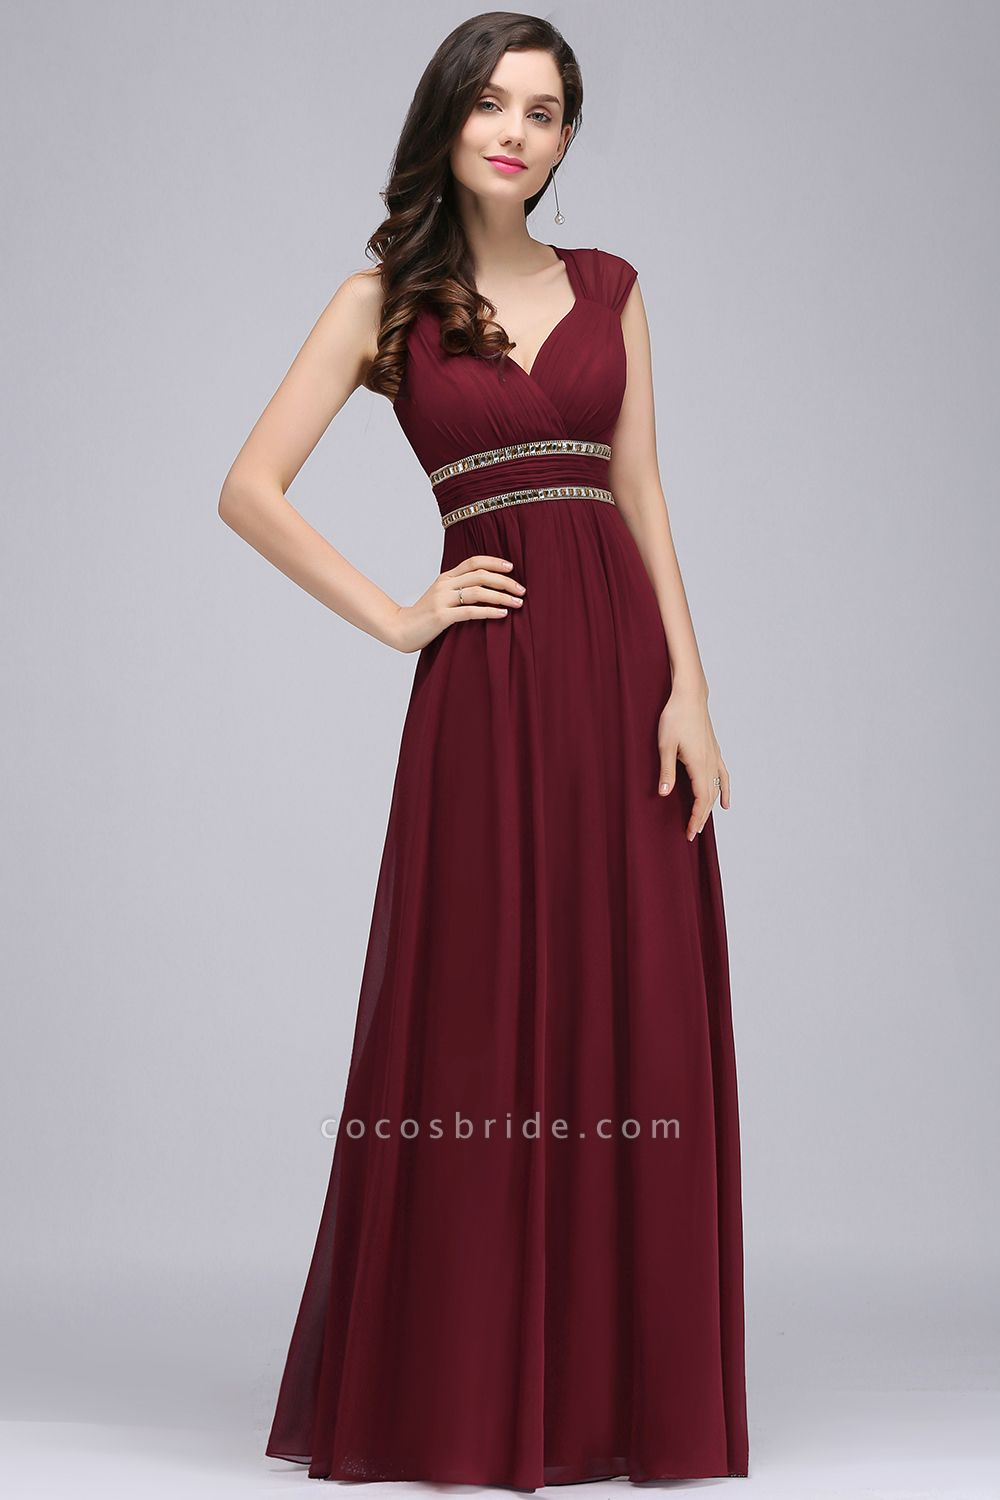 V-neck Cap Sleeves Chiffon Column Floor Length Bridesmaid Dress